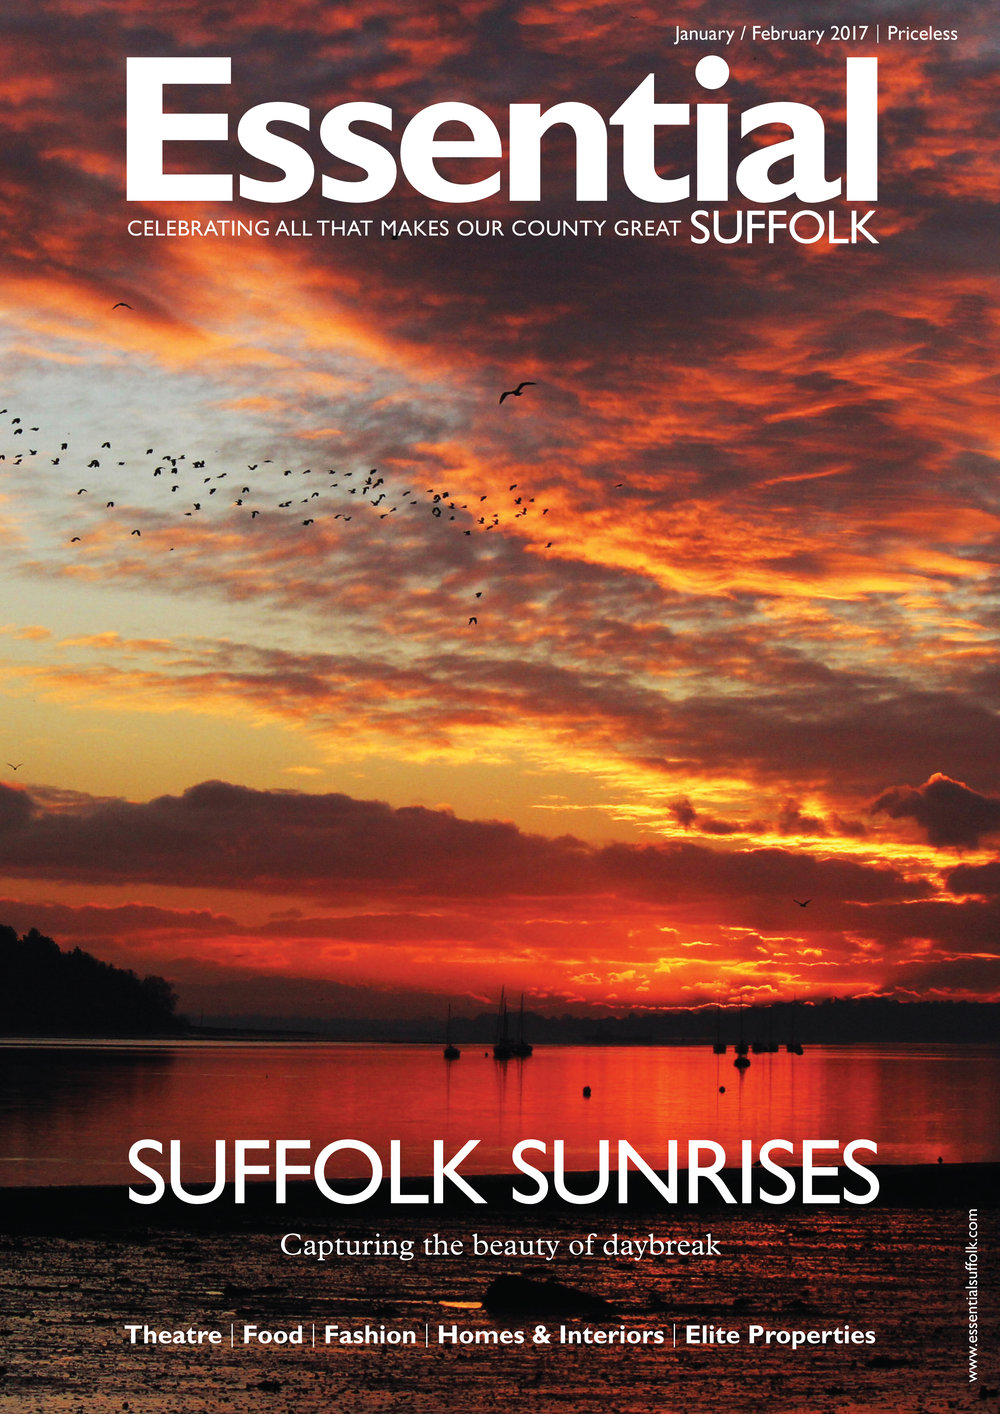 Essential Suffolk January February 2017